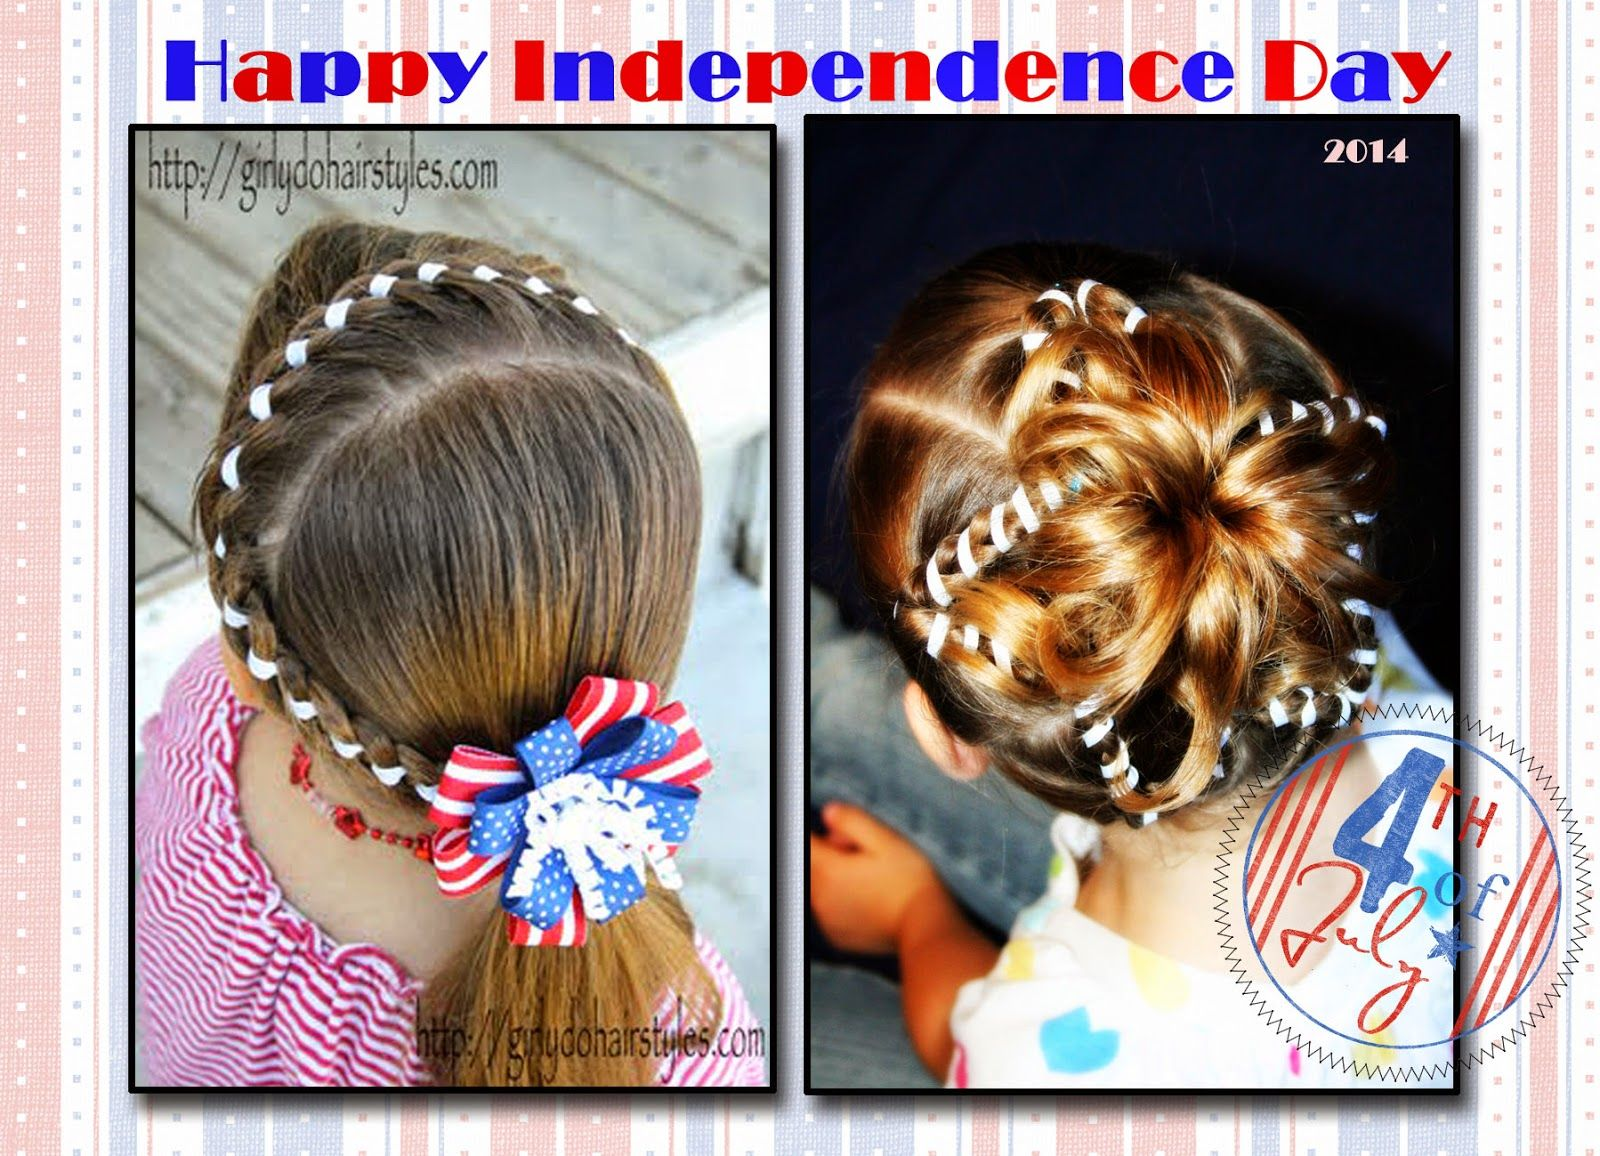 Girly do hairstyles by jenn independence day girls hairstyles